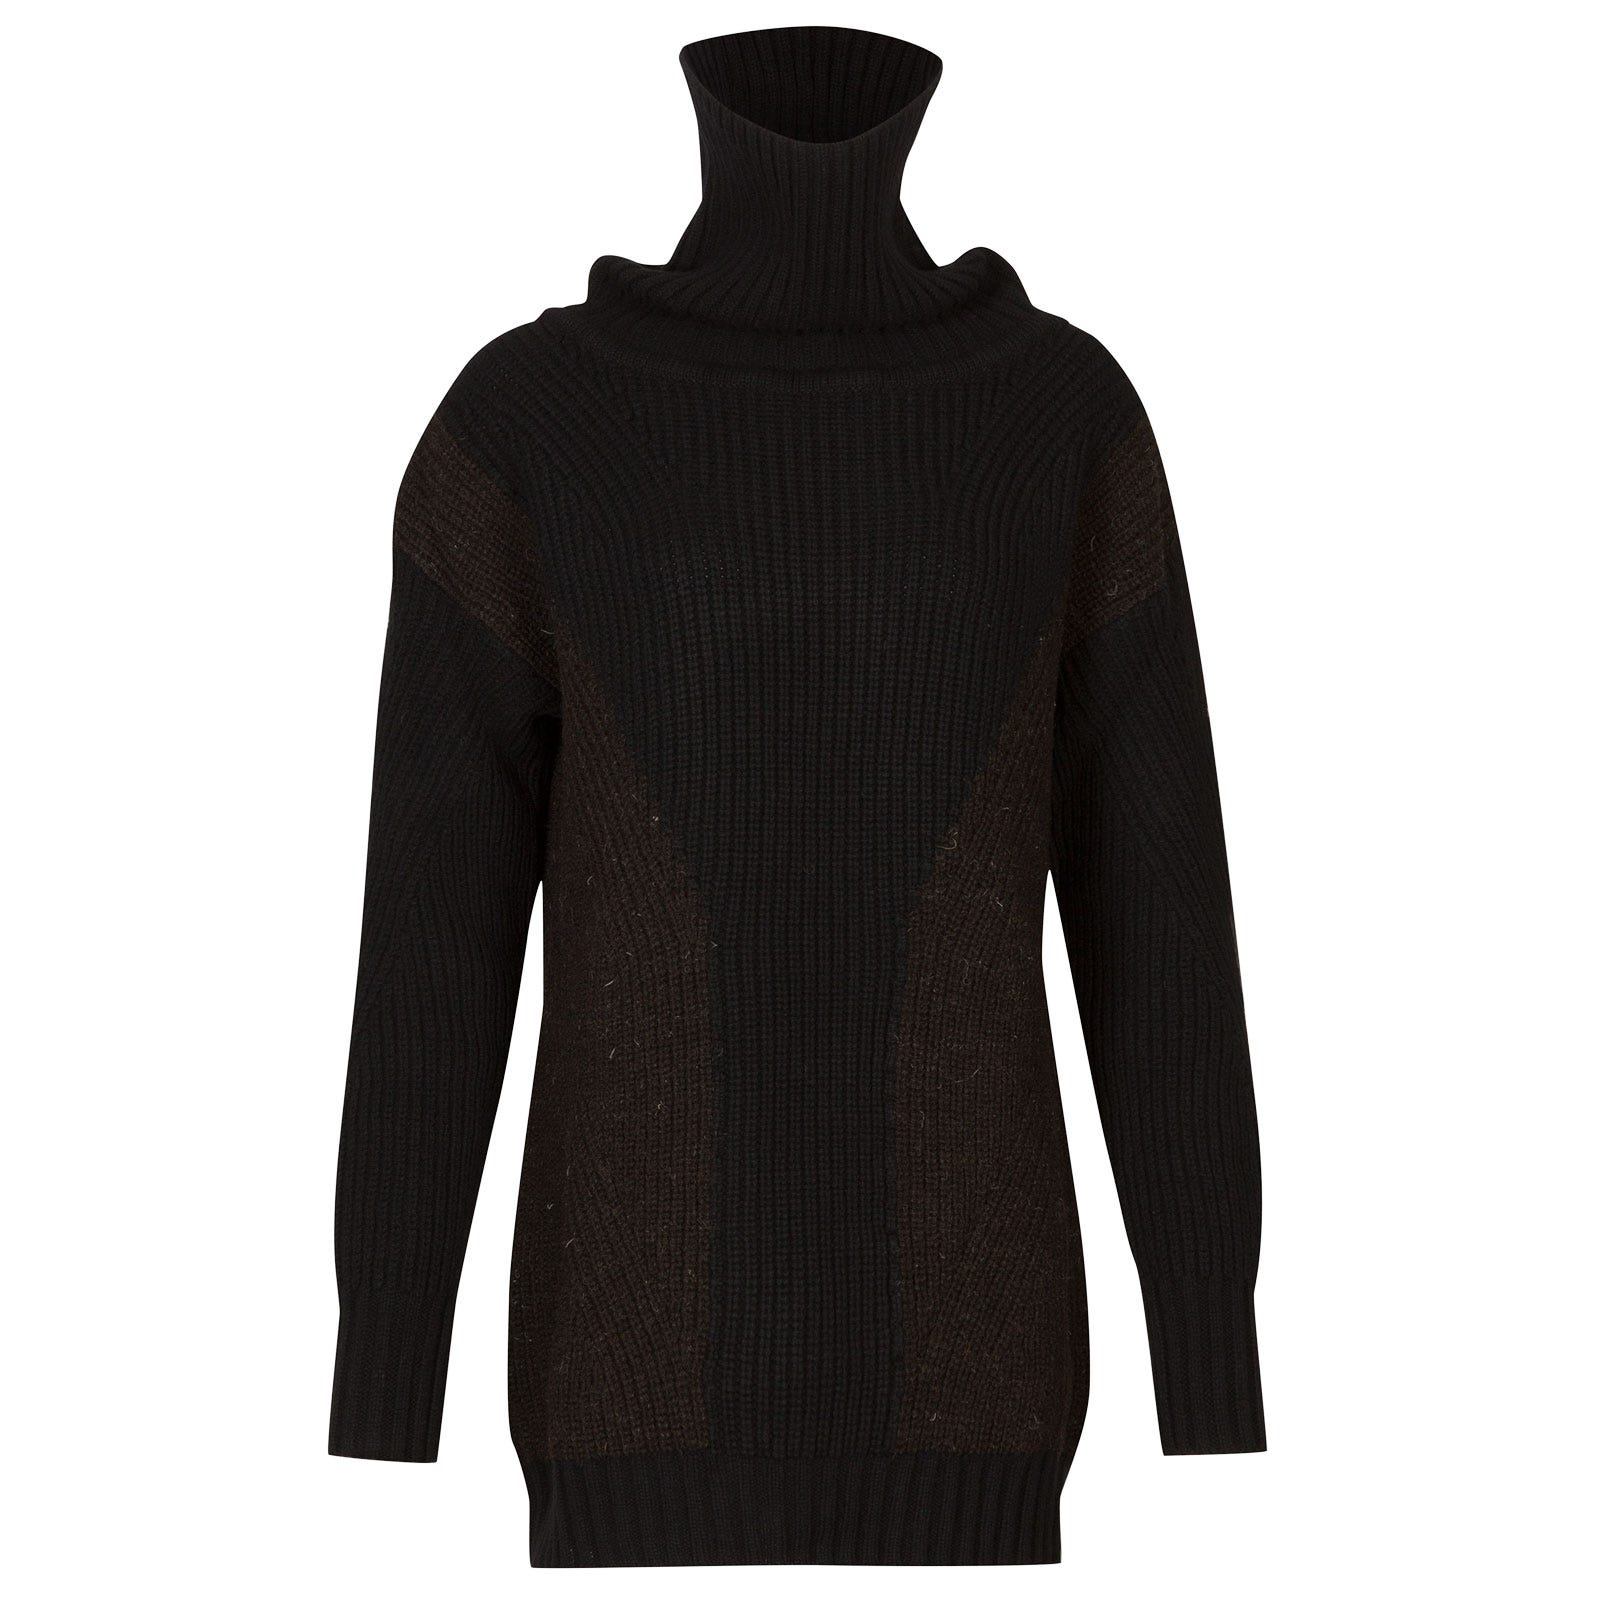 John Smedley wyedale British Wool & Cashmere Wool Sweater in Black-XL